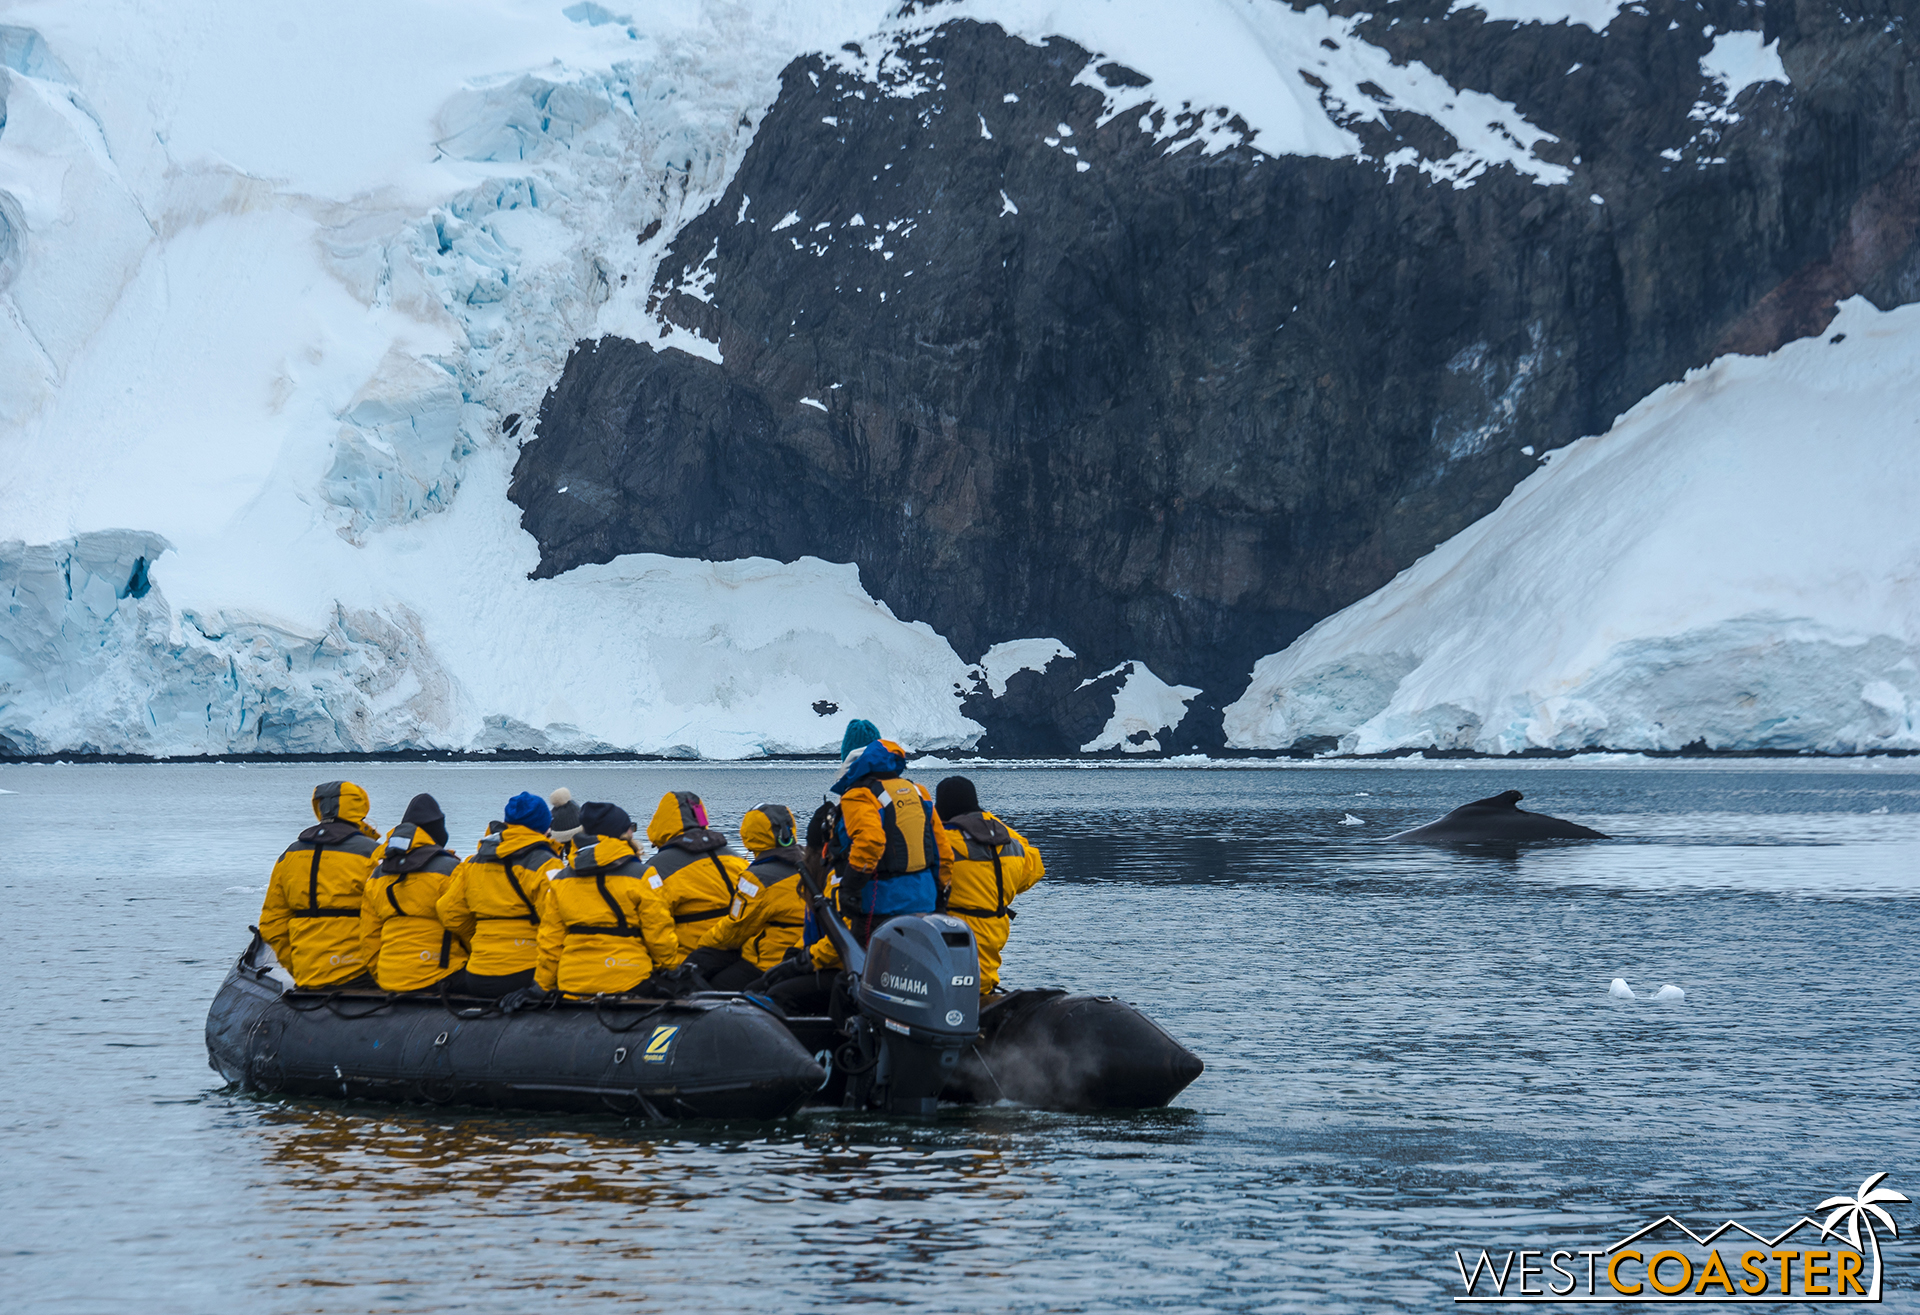 A humpback whale surfaces in front of a Quark Expeditions Zodiac boat.